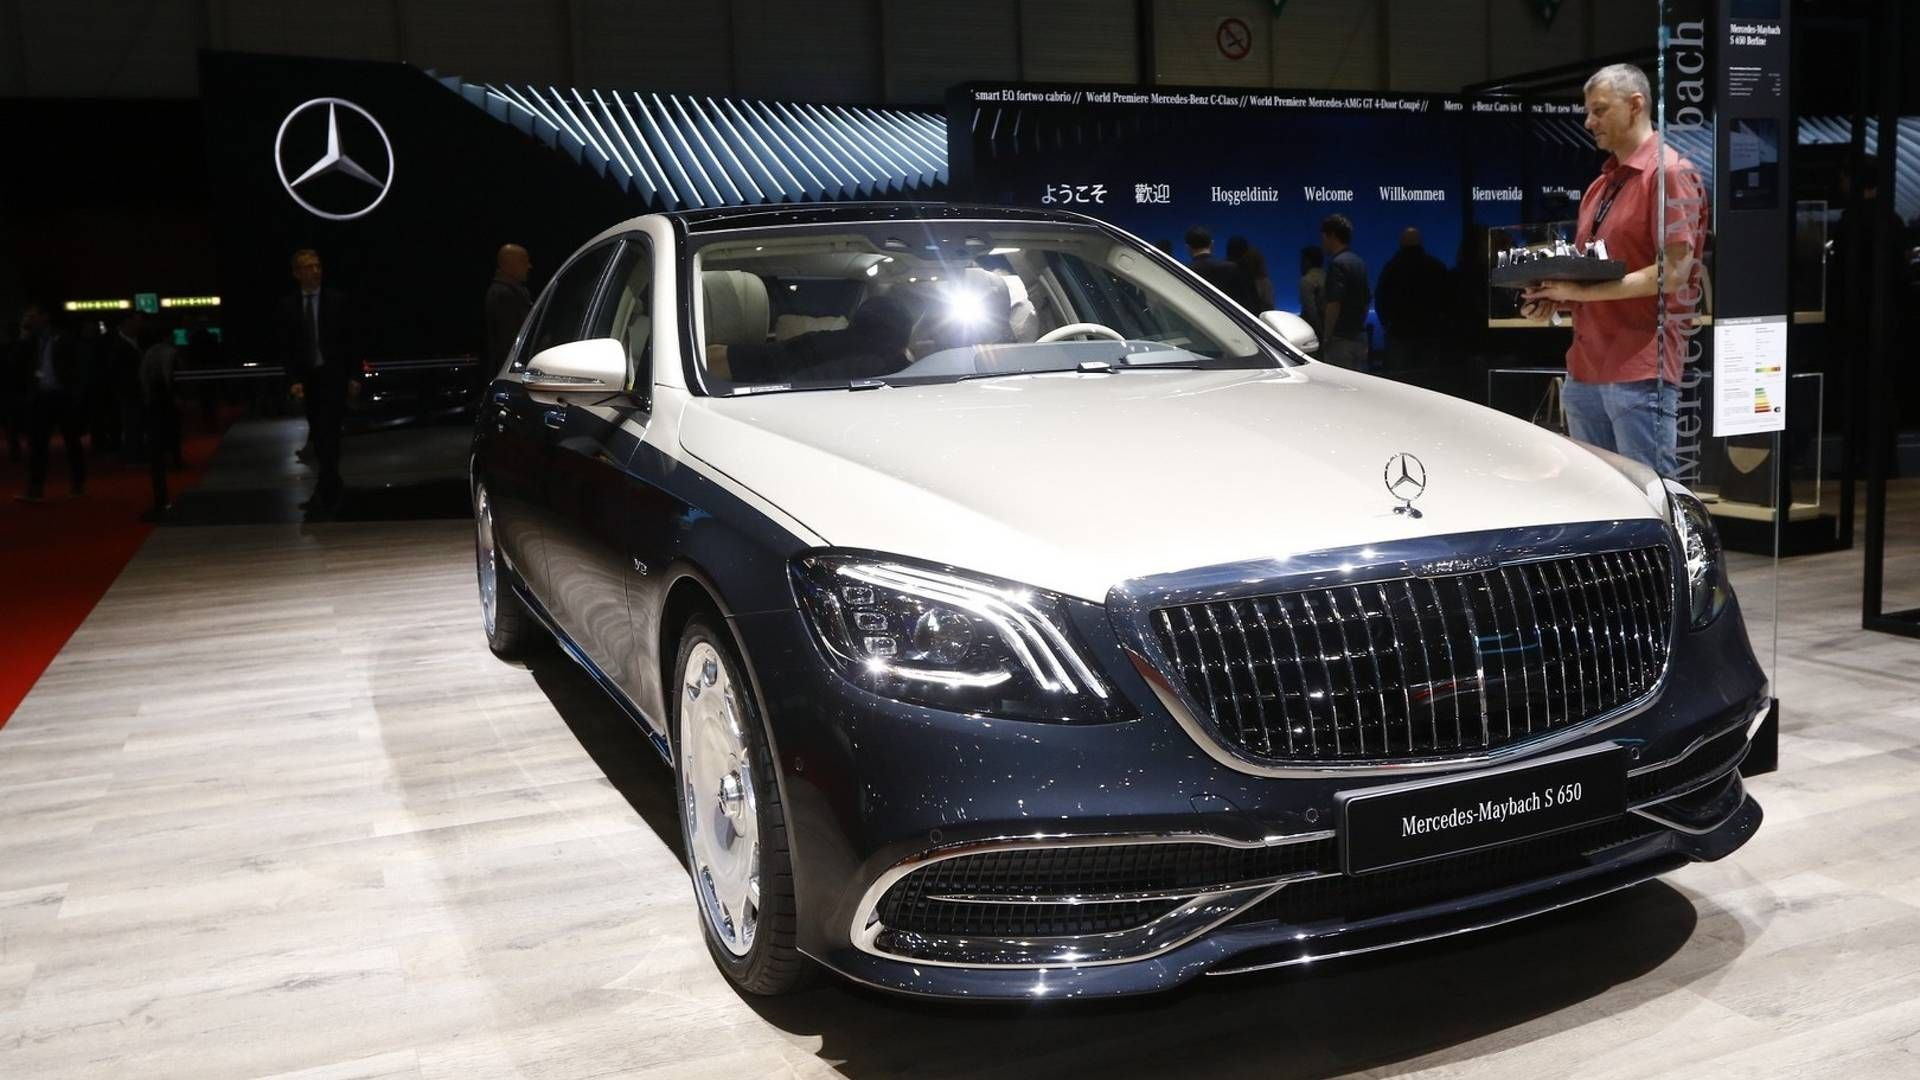 Unique Mercedes Benz Maybach Images Check More At Https